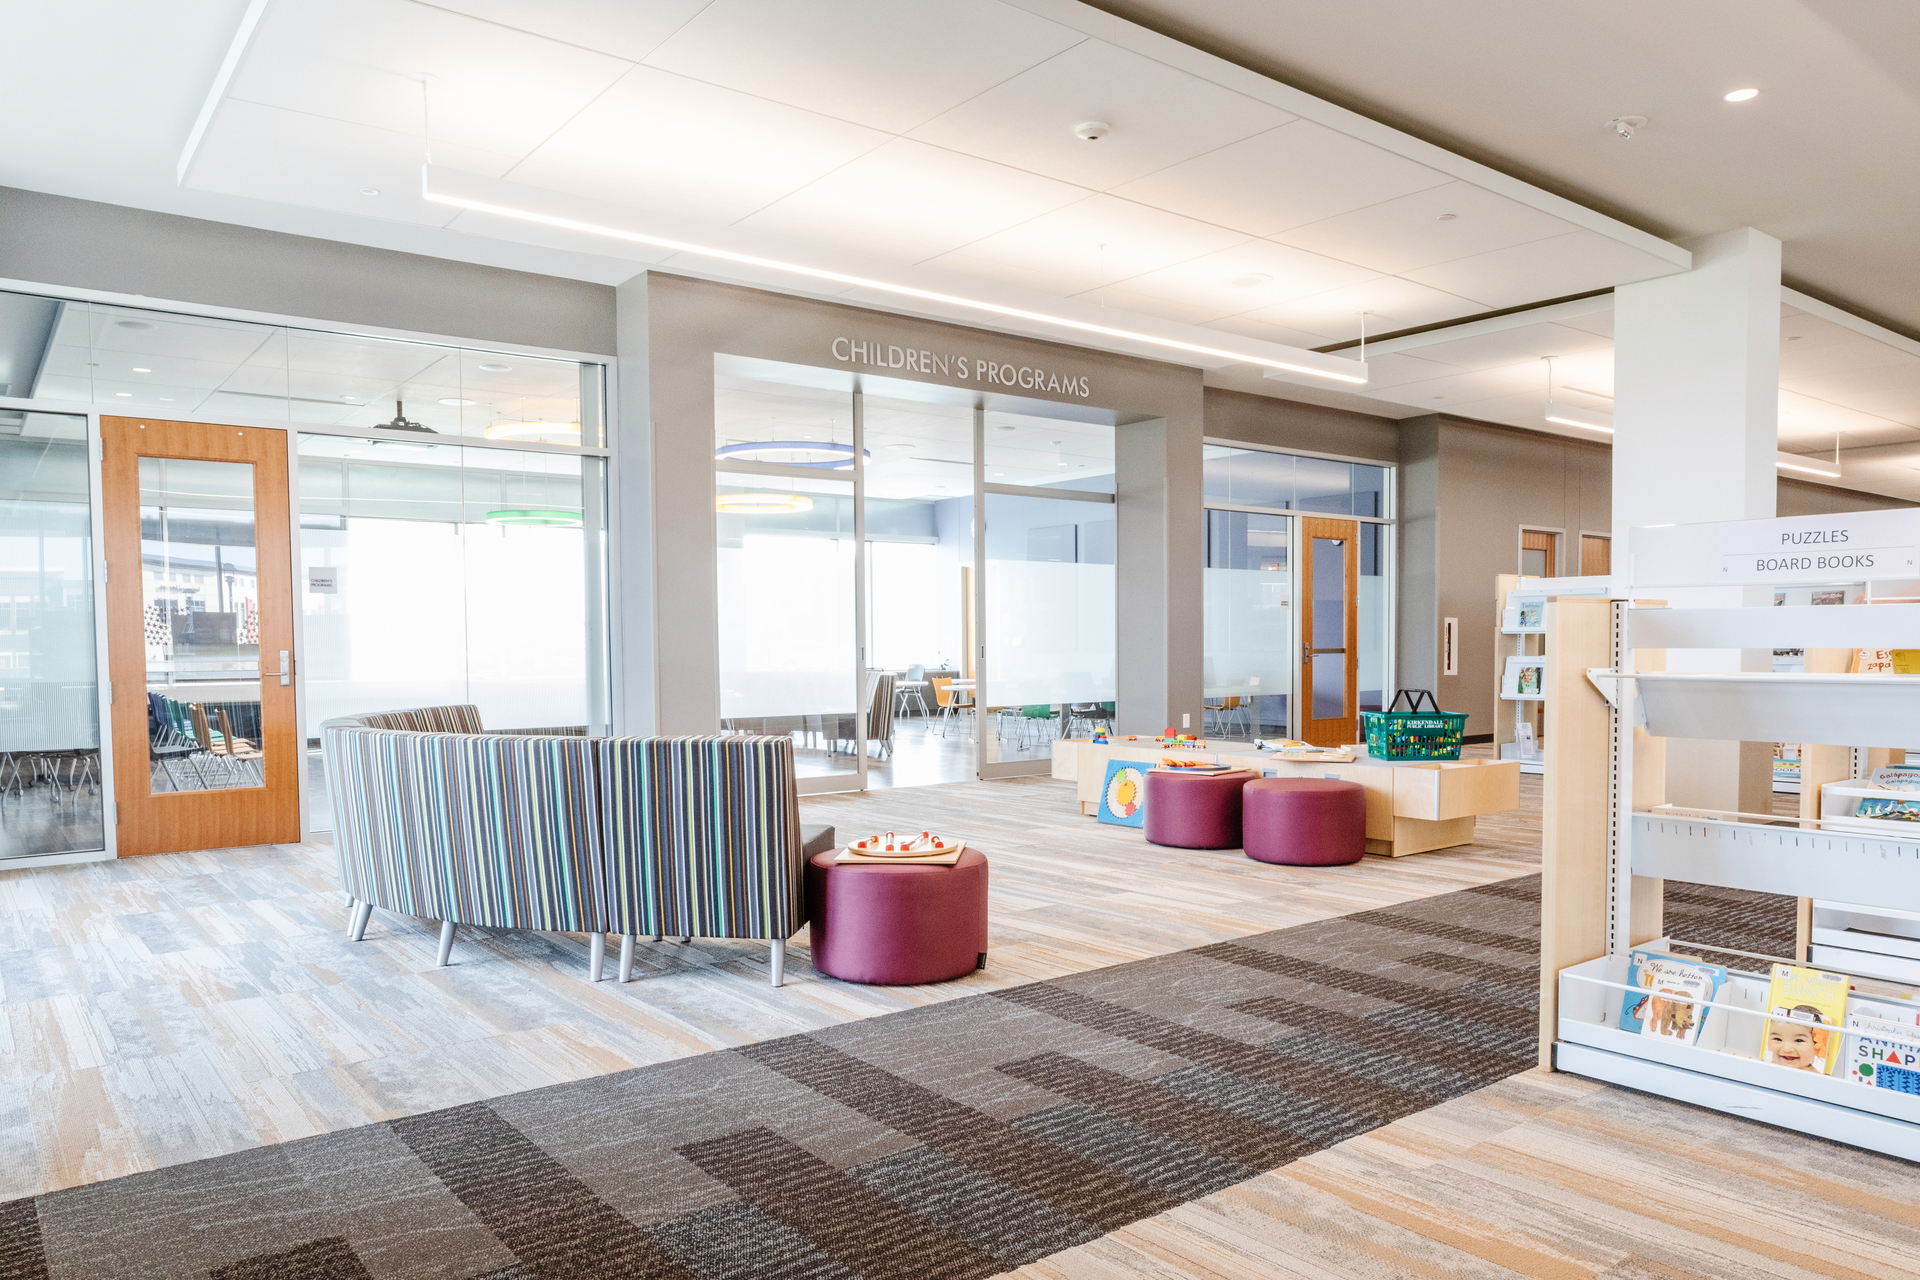 Stahl Construction Ankeny Kirkendall Public Library Interior Carpet Design and Layout